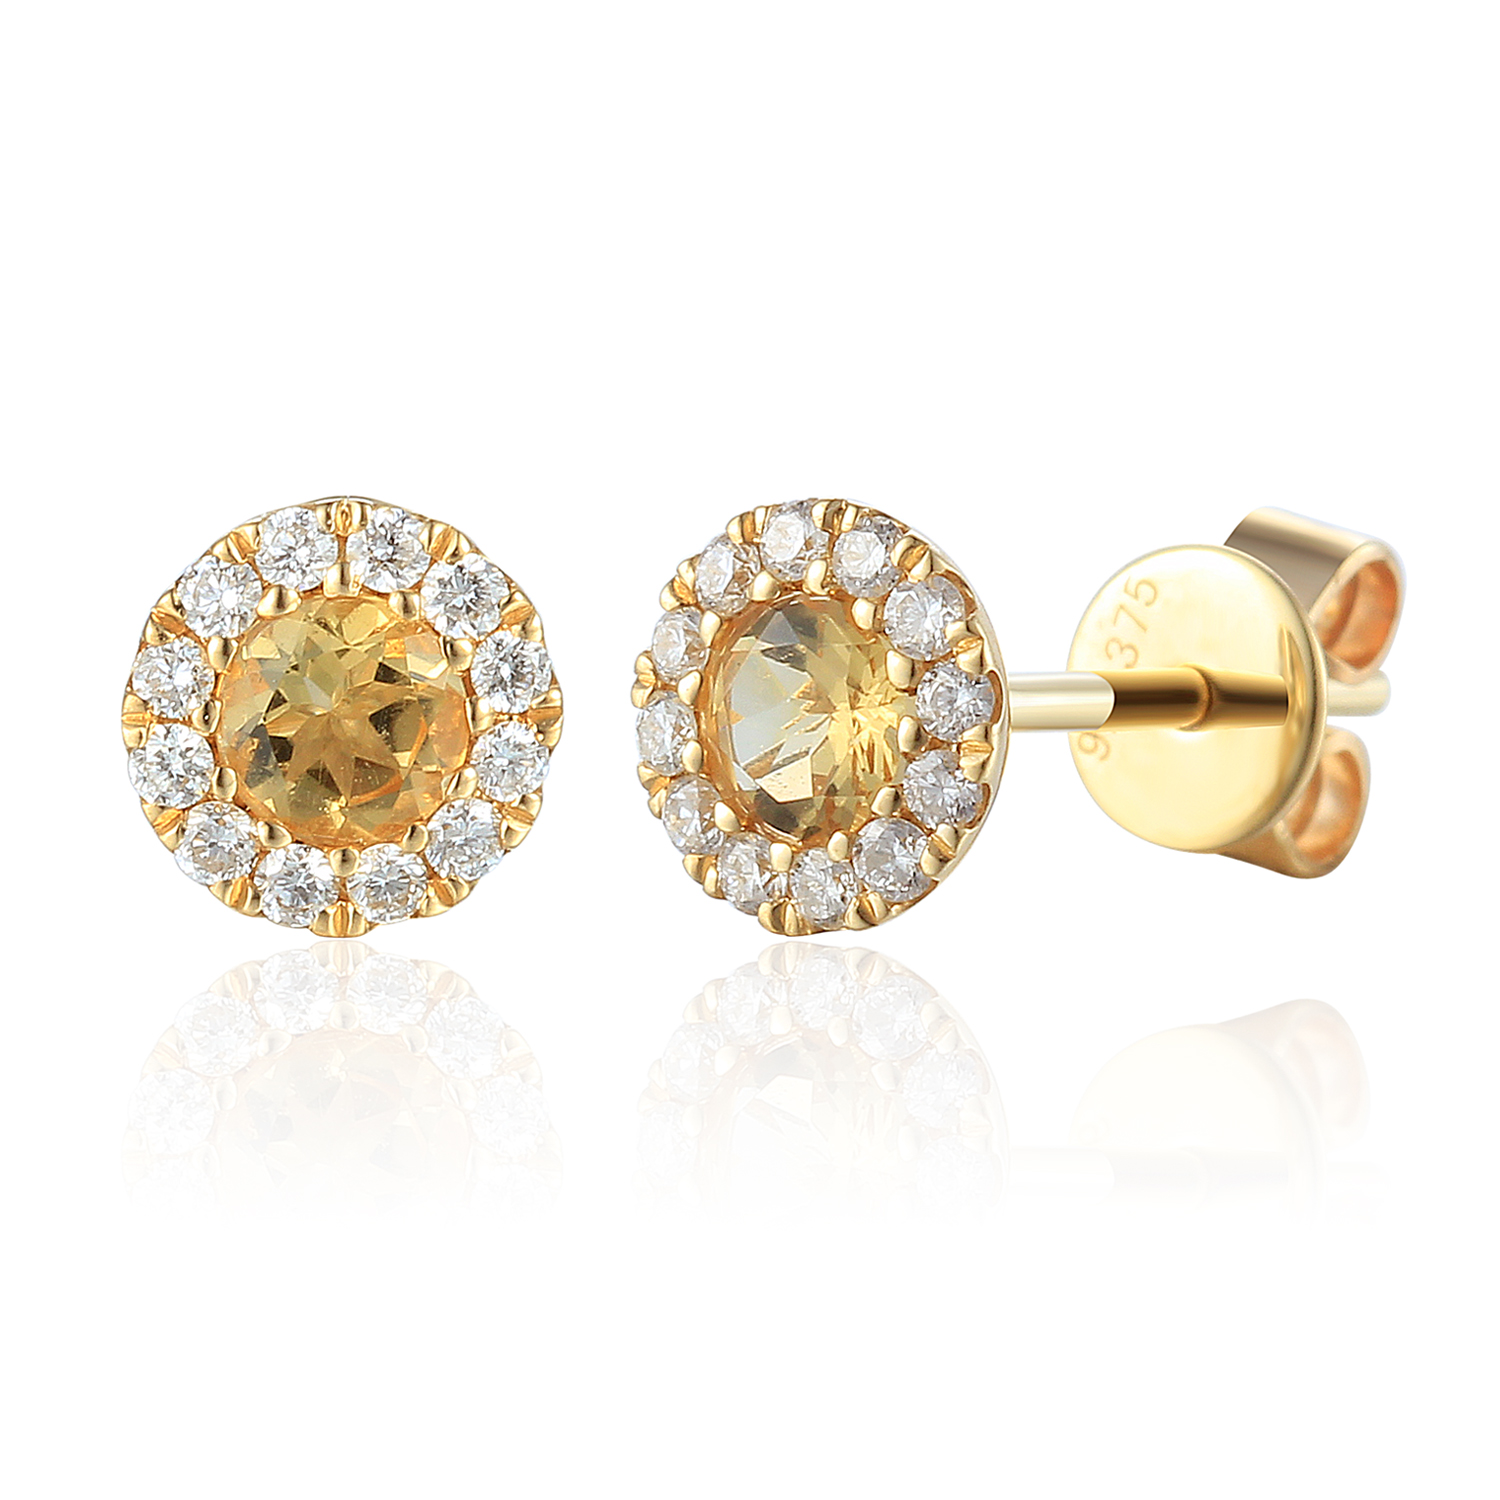 Ntinga citrine stud earrings